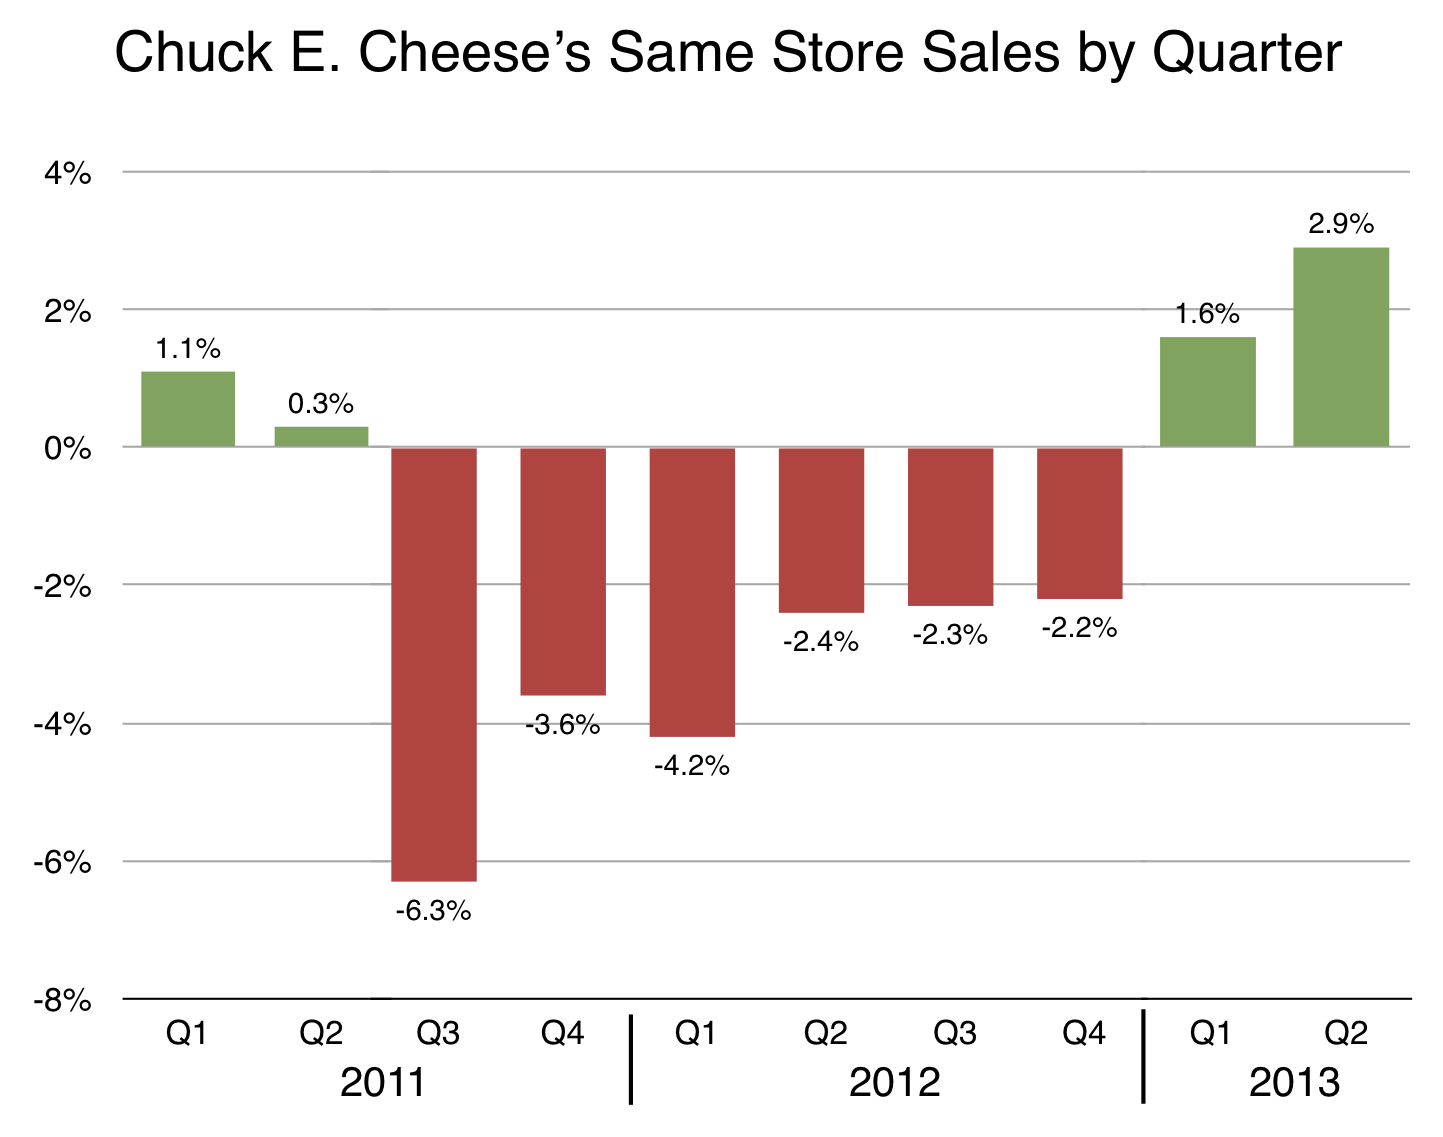 CEC qrtly comparable store sales